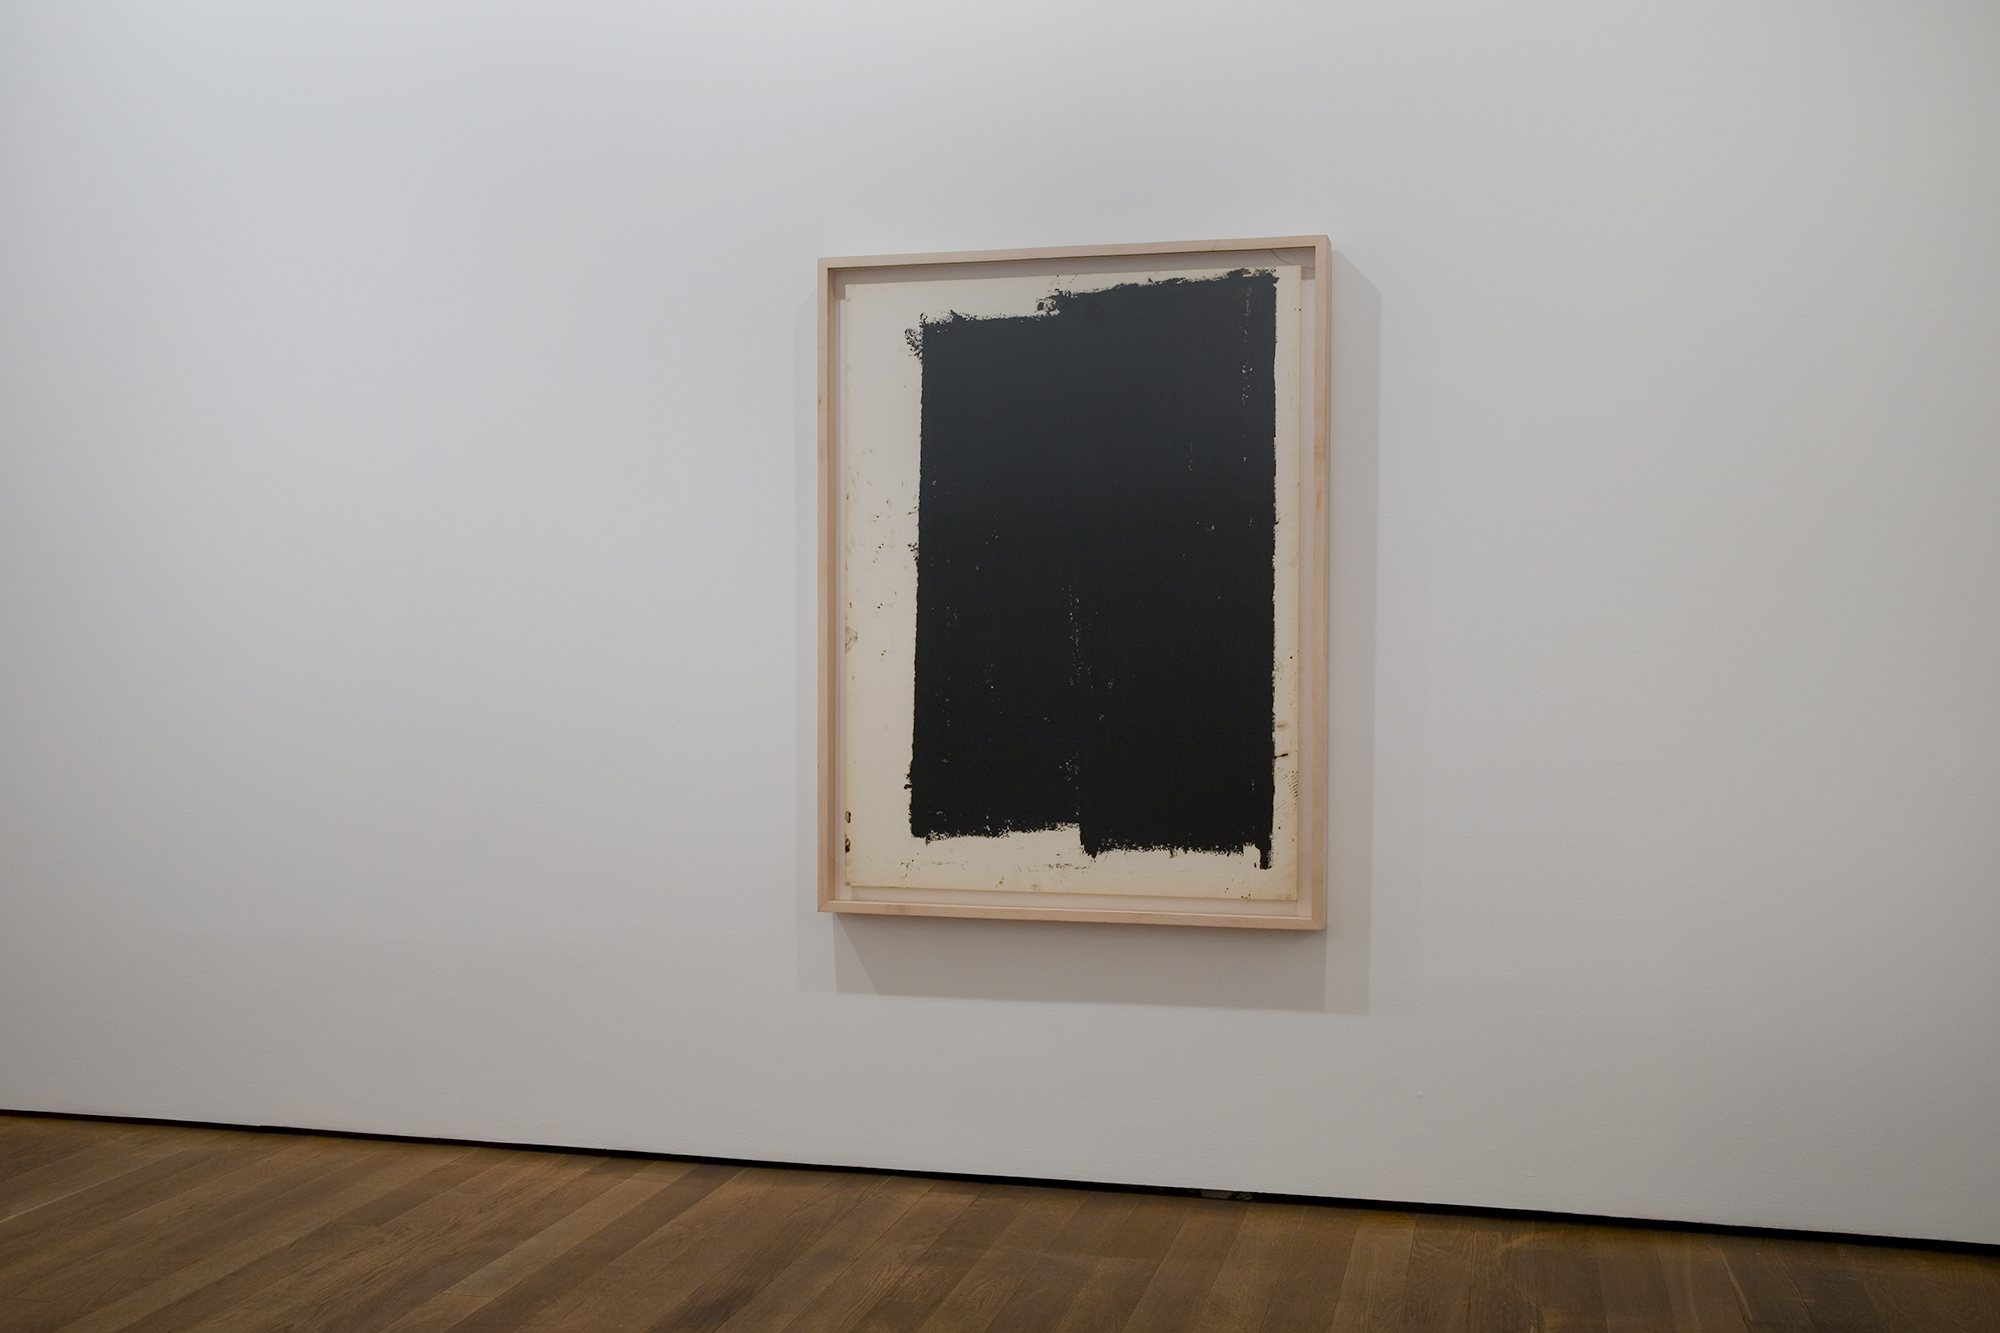 Richard Serra (2012) - Echoic Drawings